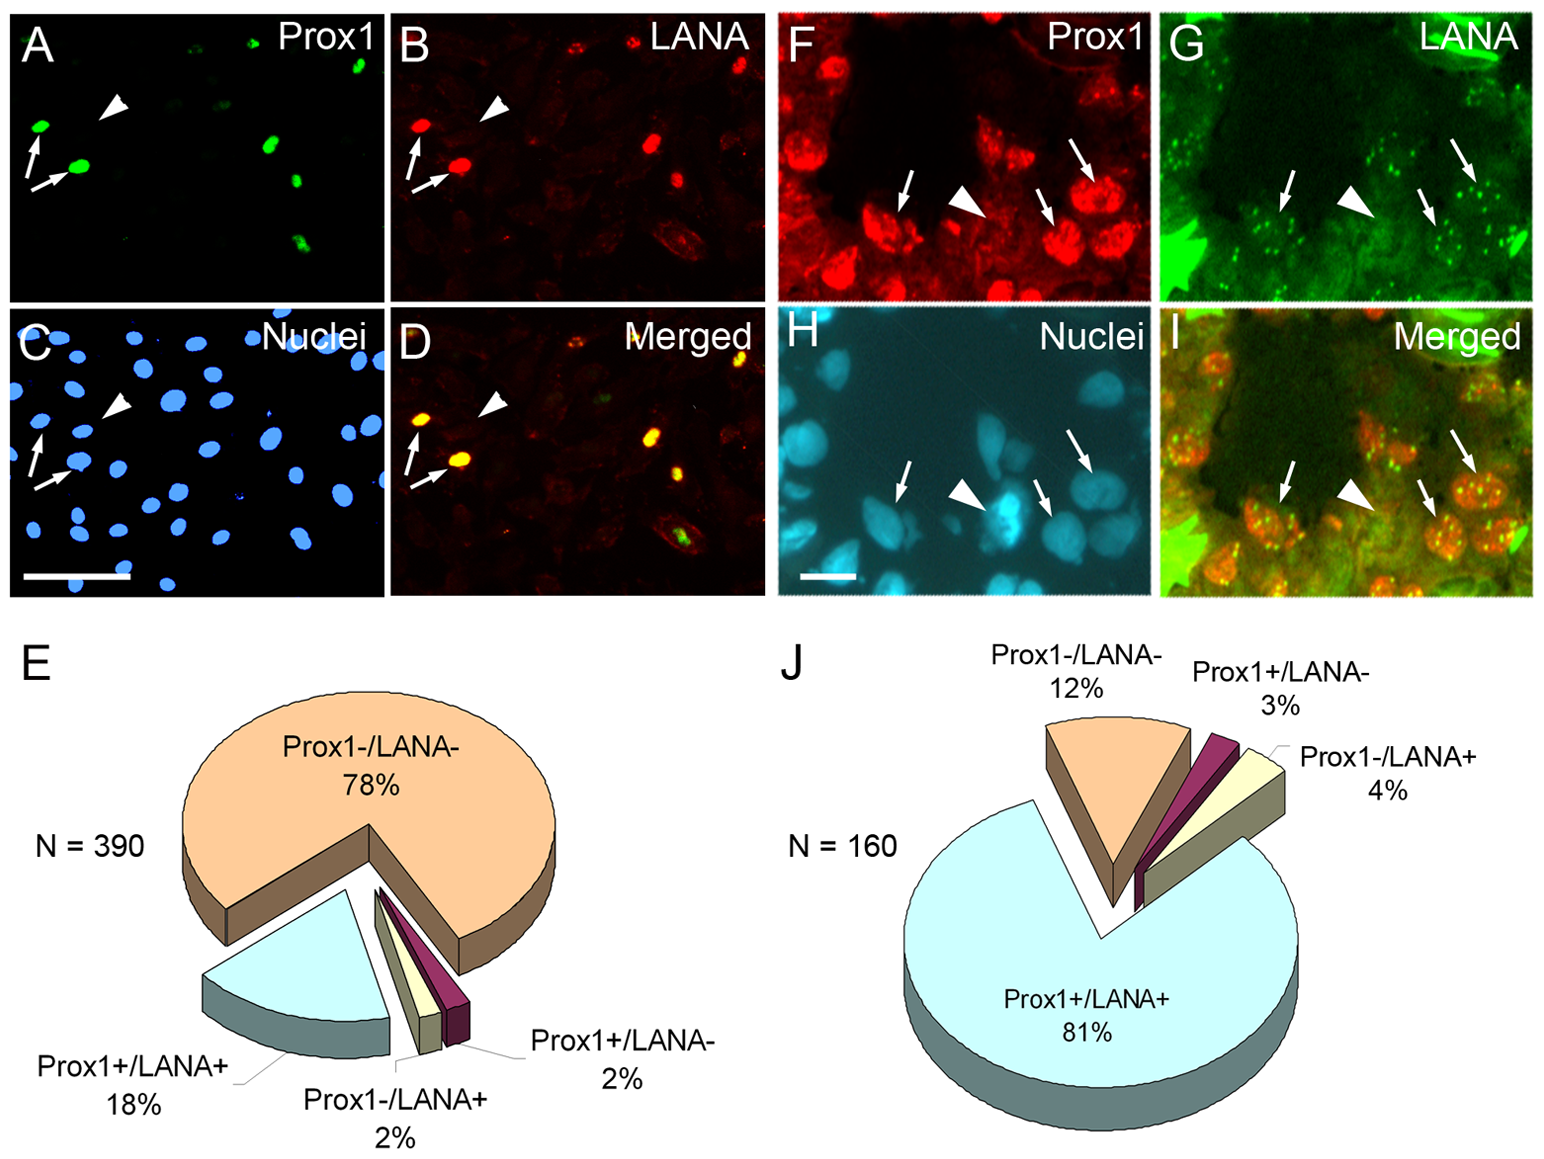 PROX1 is upregulated only in KSHV-infected endothelial cells <i>in vitro</i> and <i>in vivo</i>.